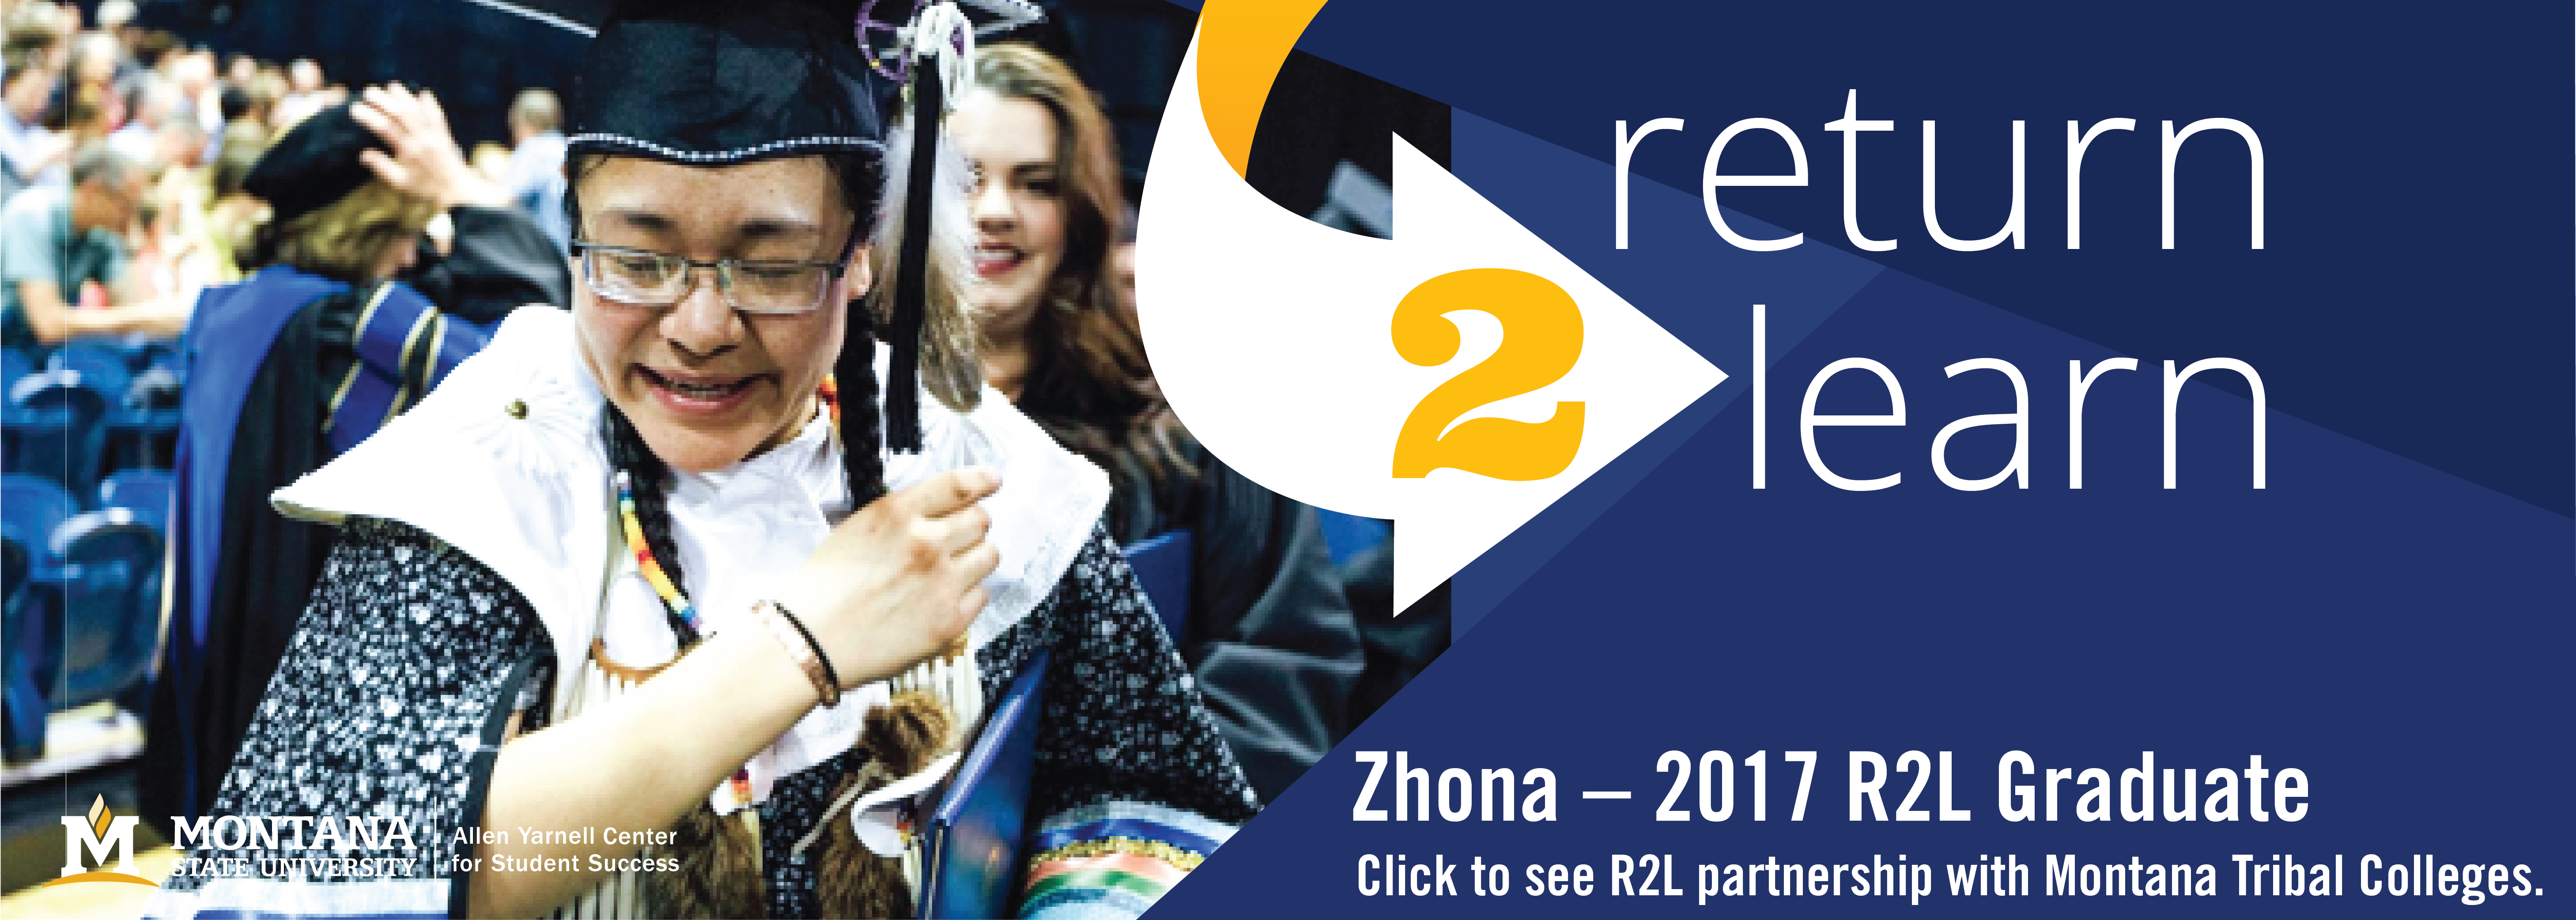 Zhona 2017 R2L Graduate. click here to learn R2L partnership with tribal college